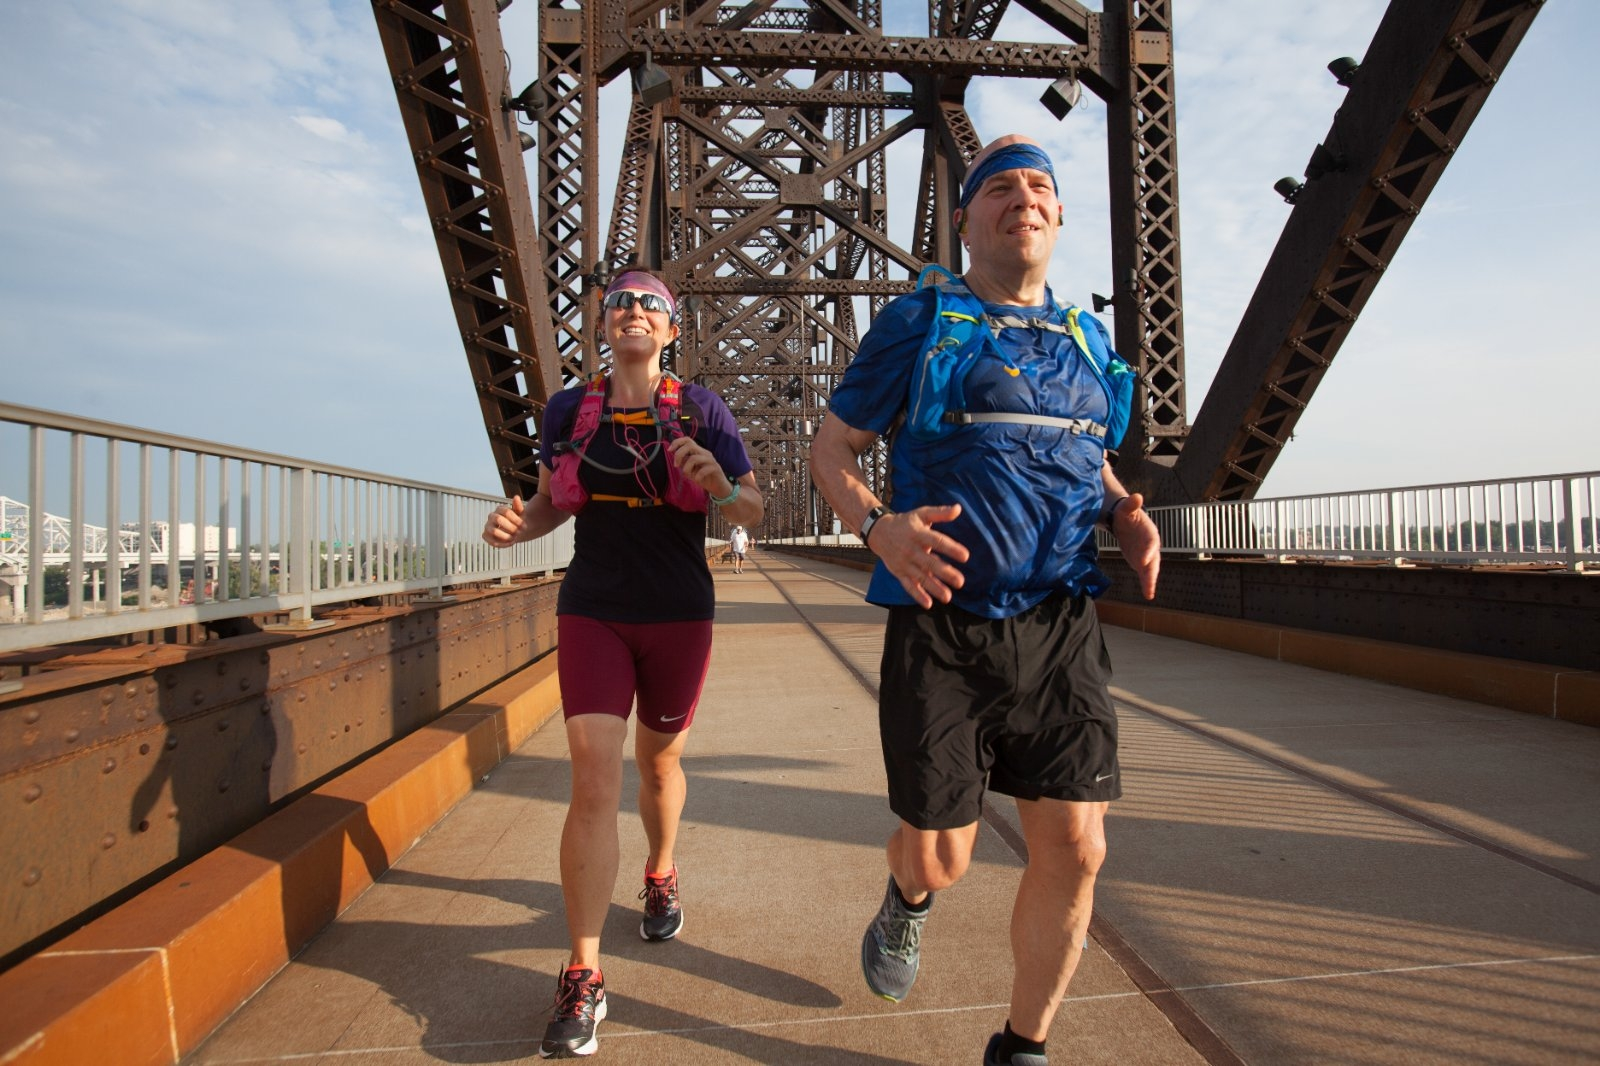 Runners training for a half marathon started across a bridge.